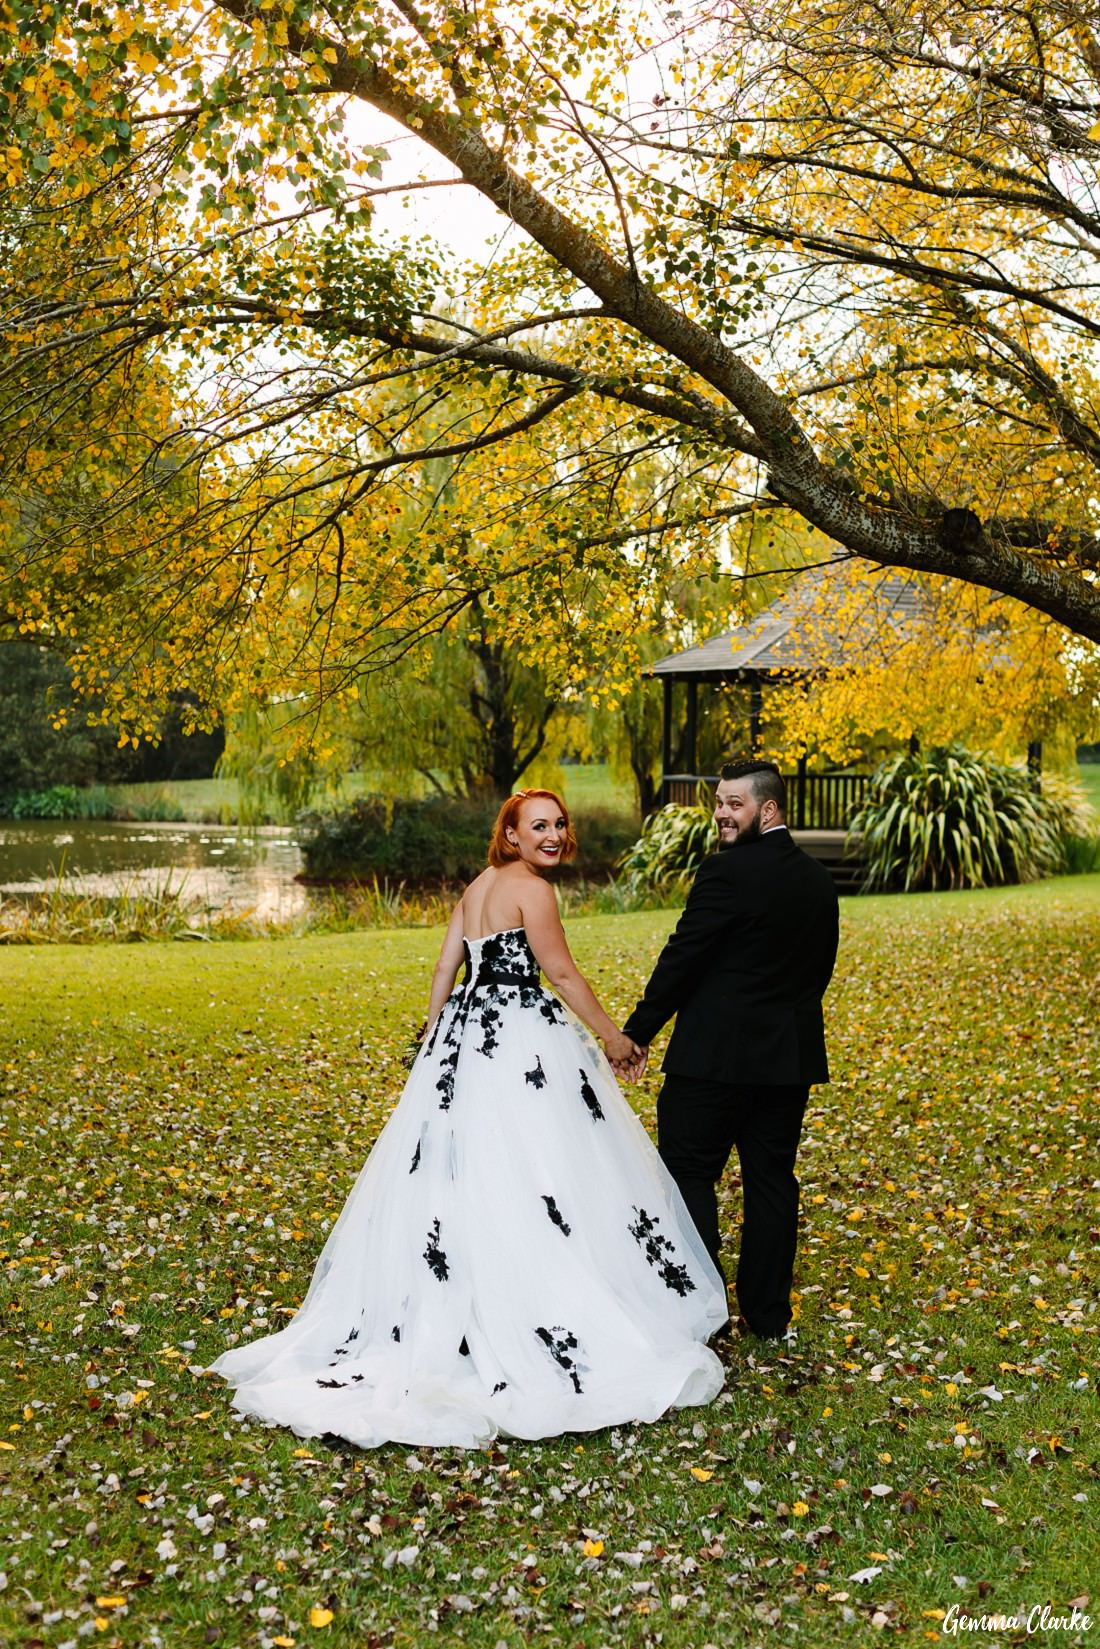 Stunning autumn colours as the bride and groom walk across a yellow leaf covered lawn toward the gazebo at this Briars Country Lodge Wedding